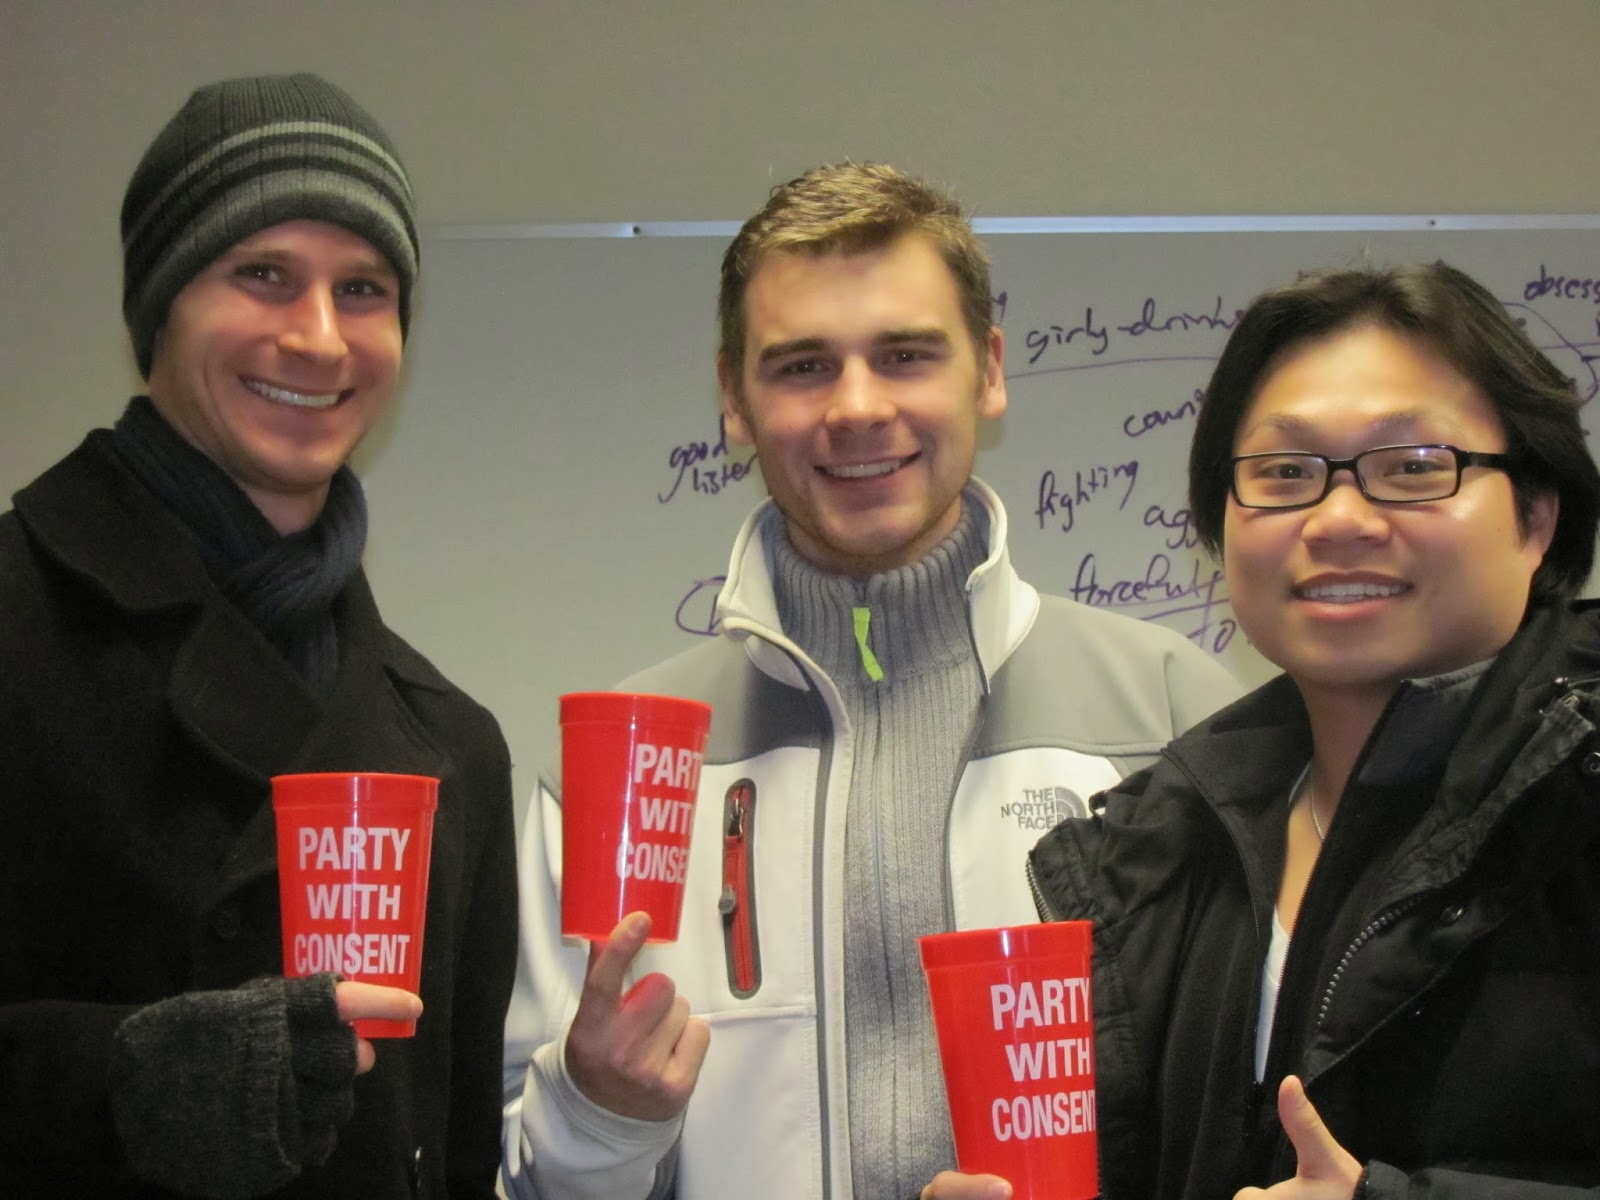 denison sustainability fellows david bohn alex uland and jack lin all juniors participated in s trial workshop